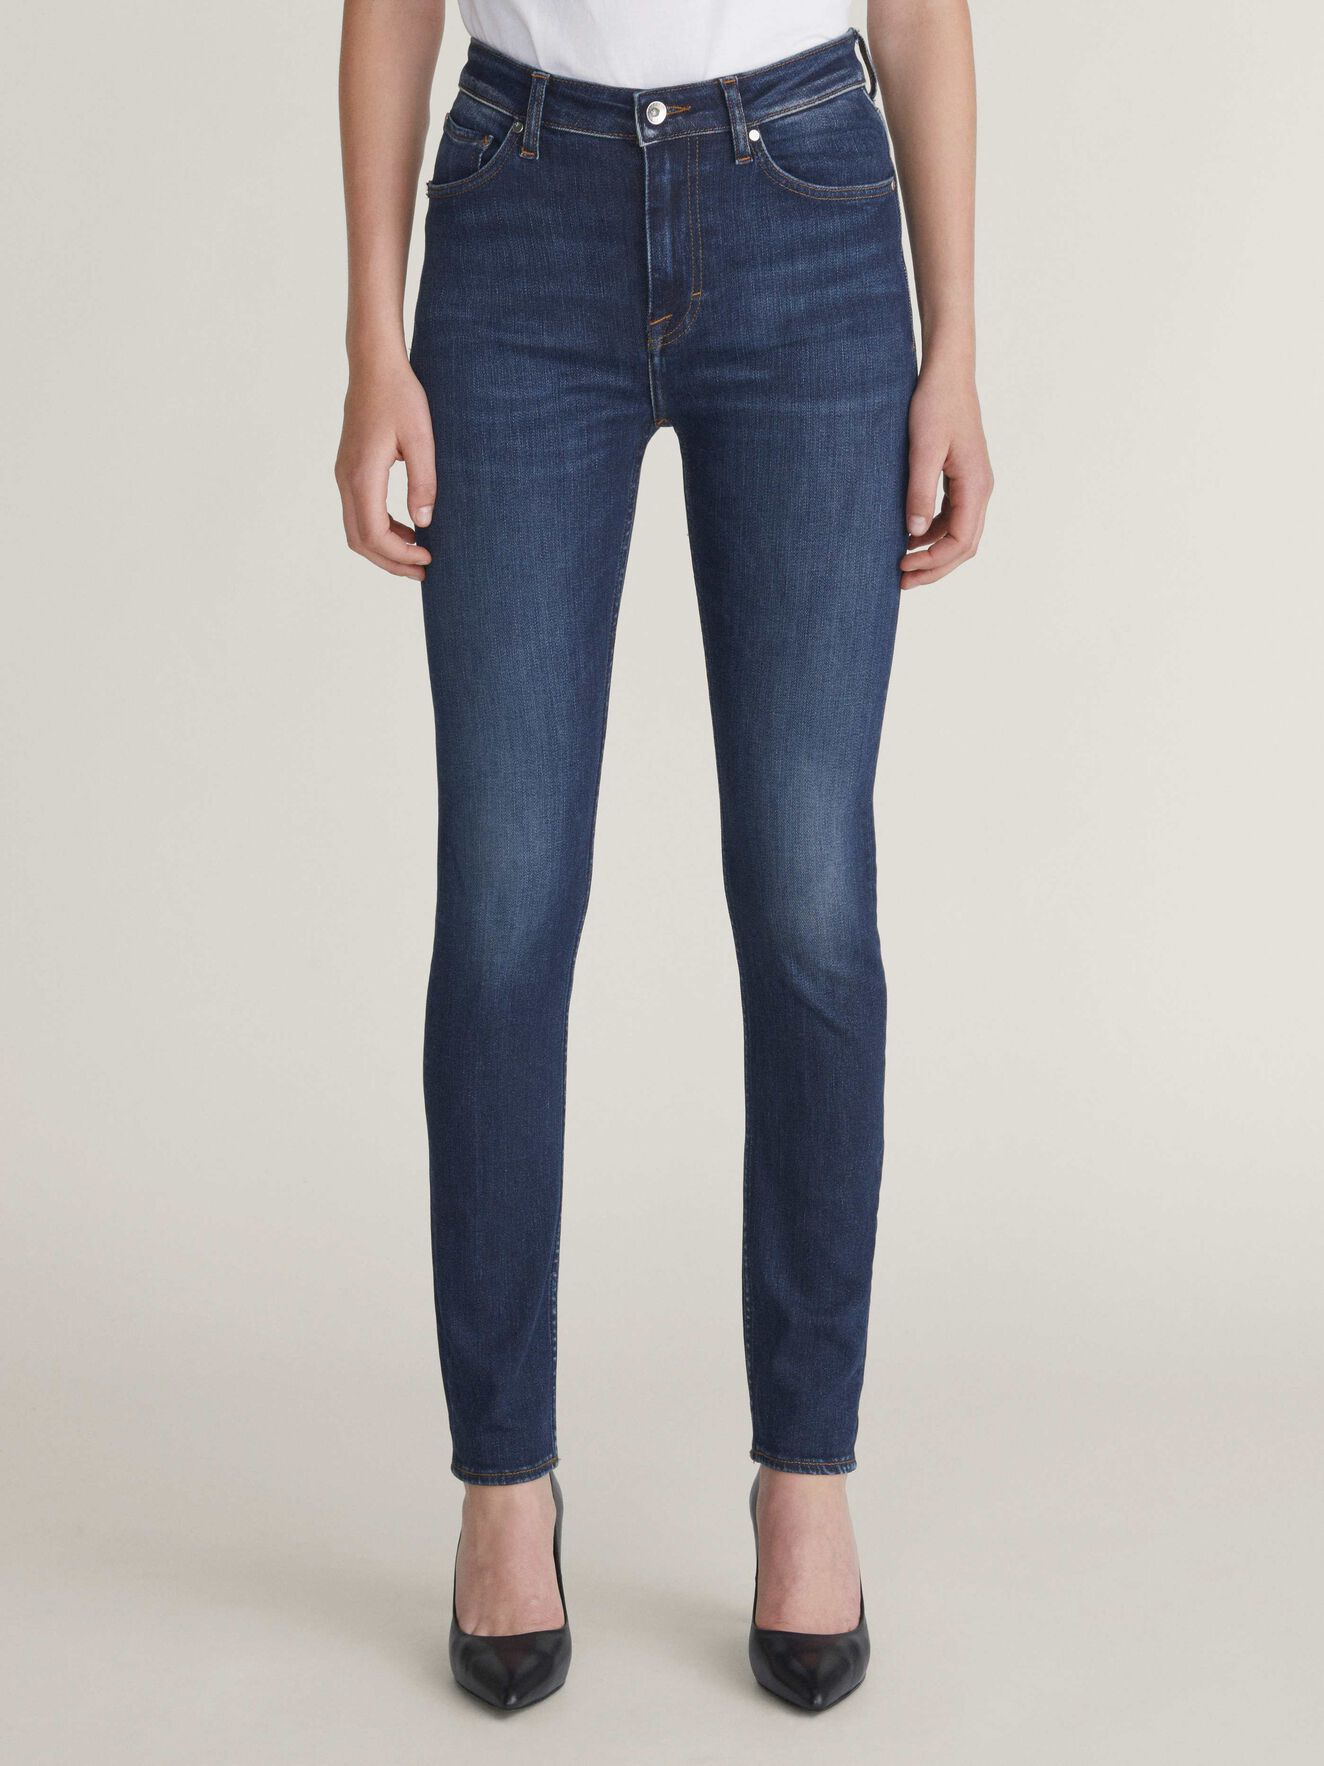 Shelly Jeans in Royal Blue from Tiger of Sweden